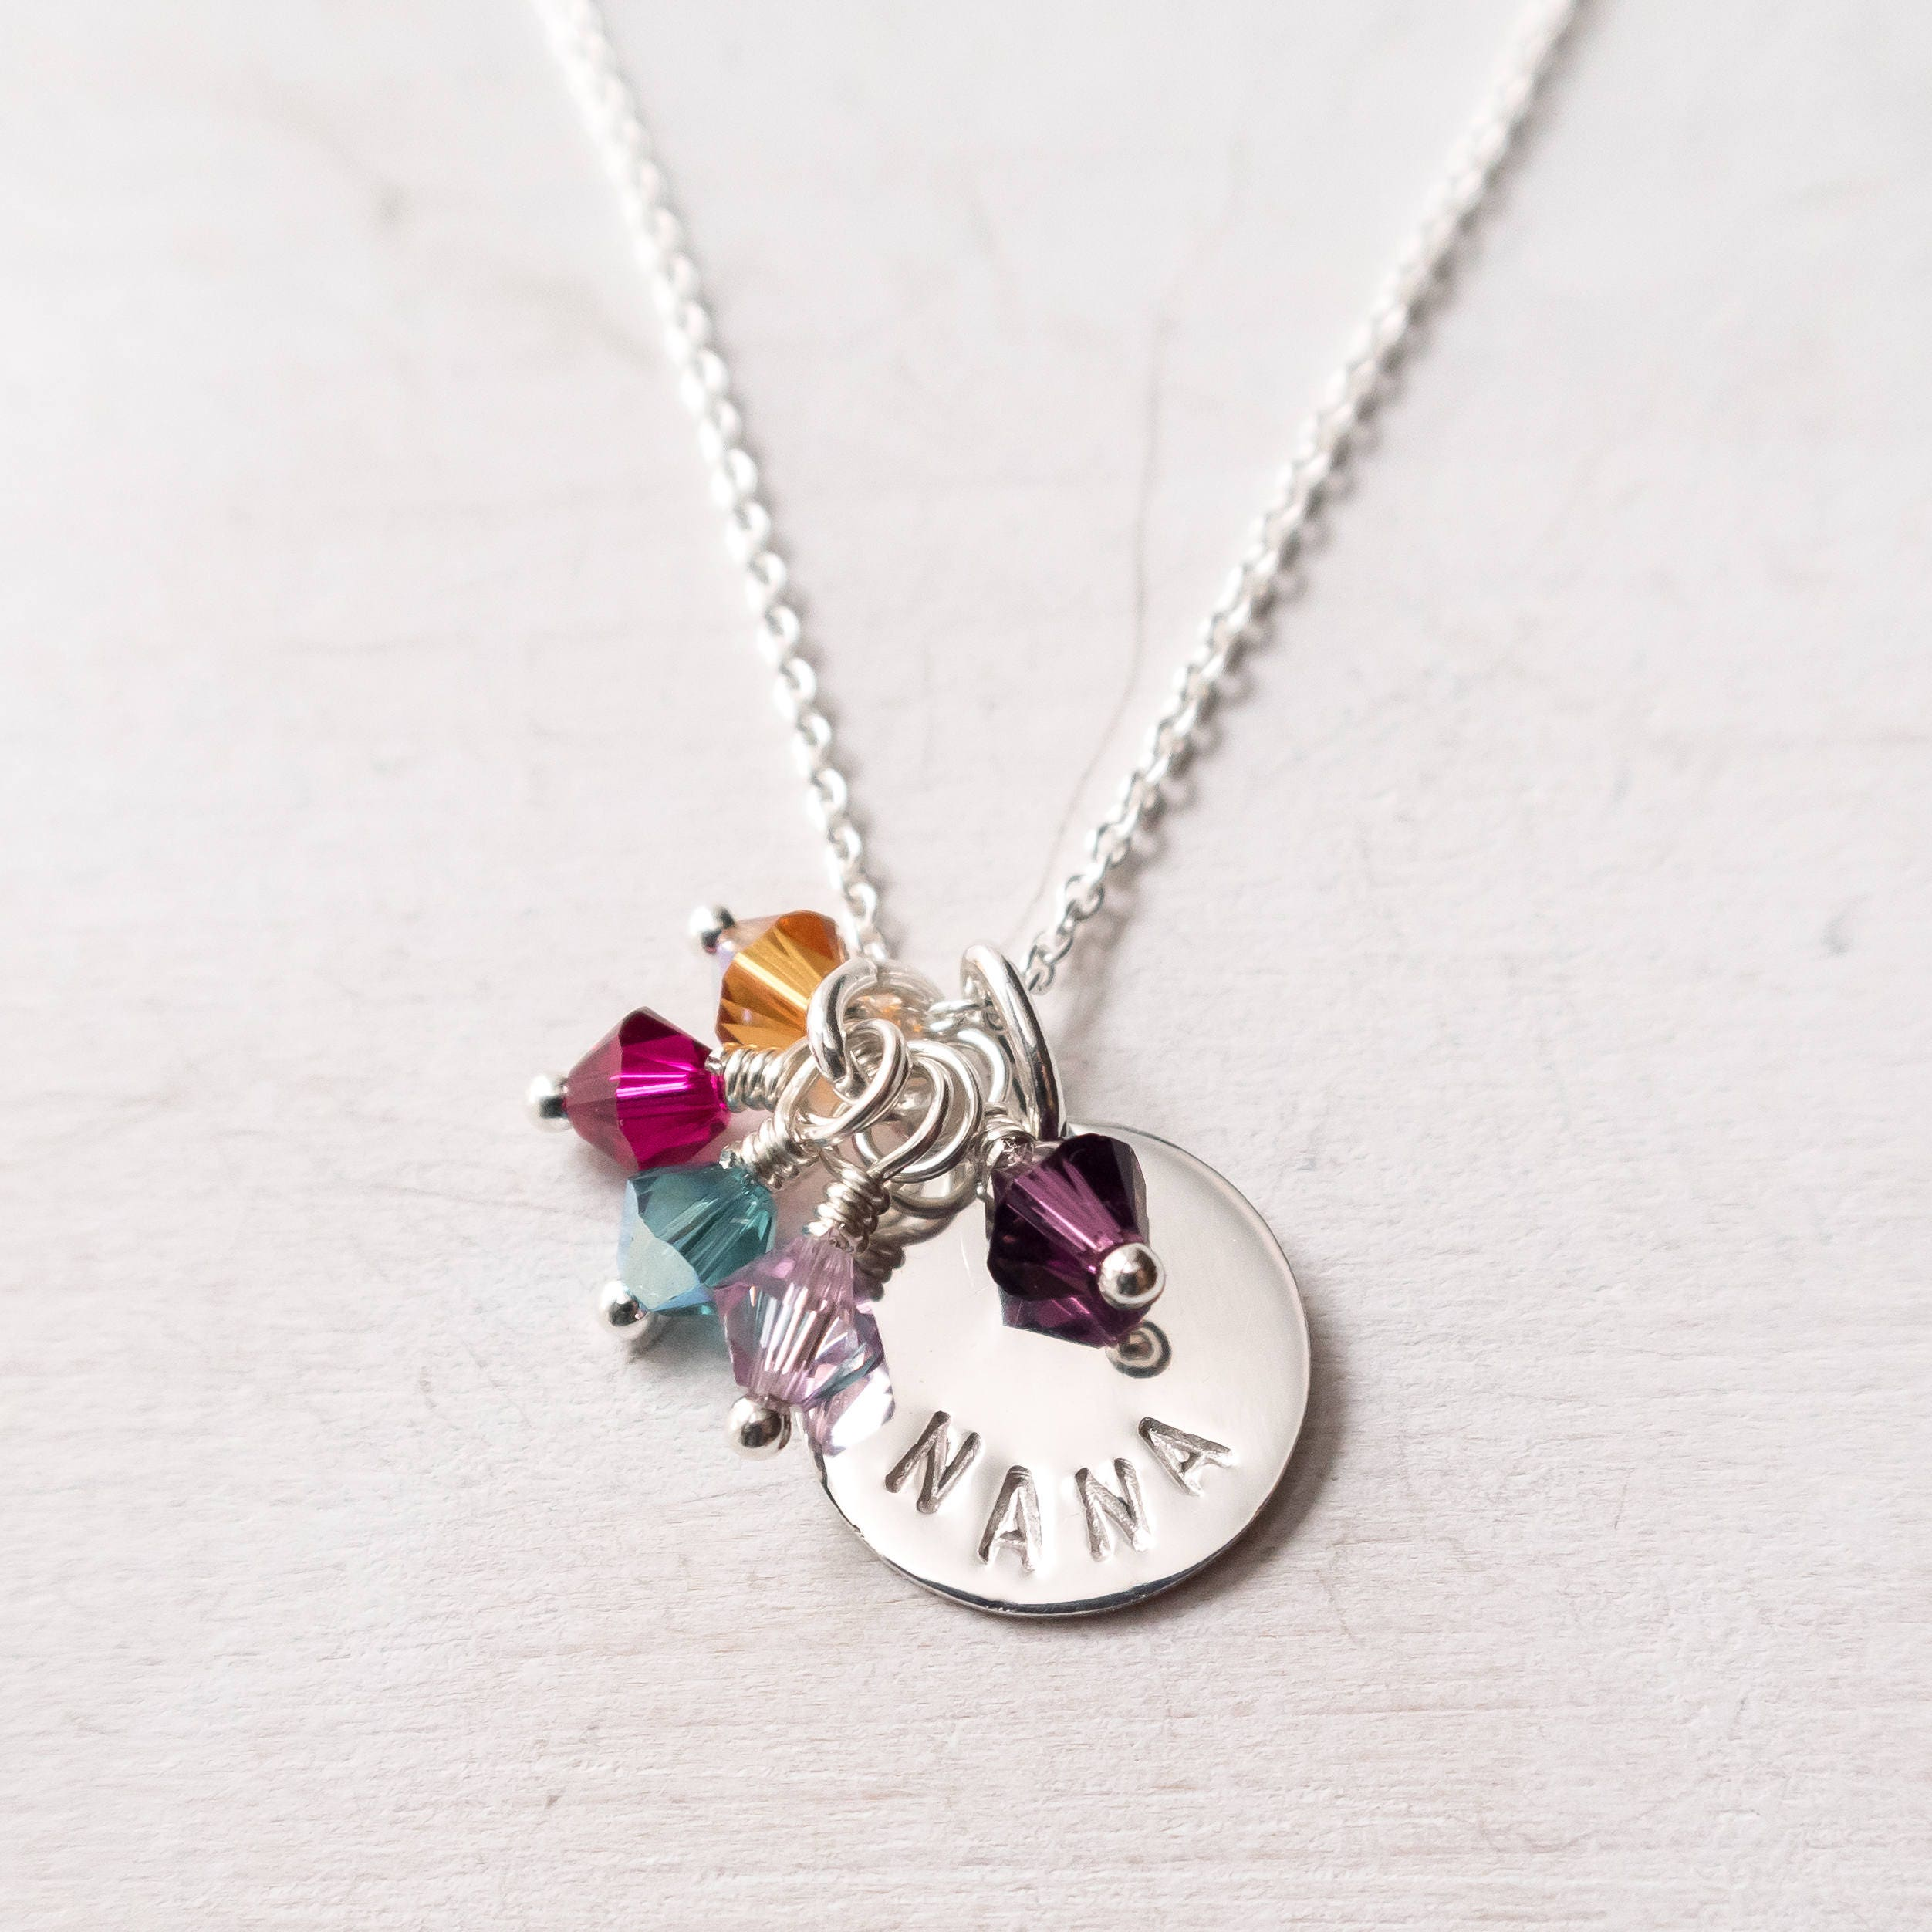 family over mother grandkid keepsake birthstone jewelry available pendant ip s personalized necklace com gold in walmart heart silver sterling